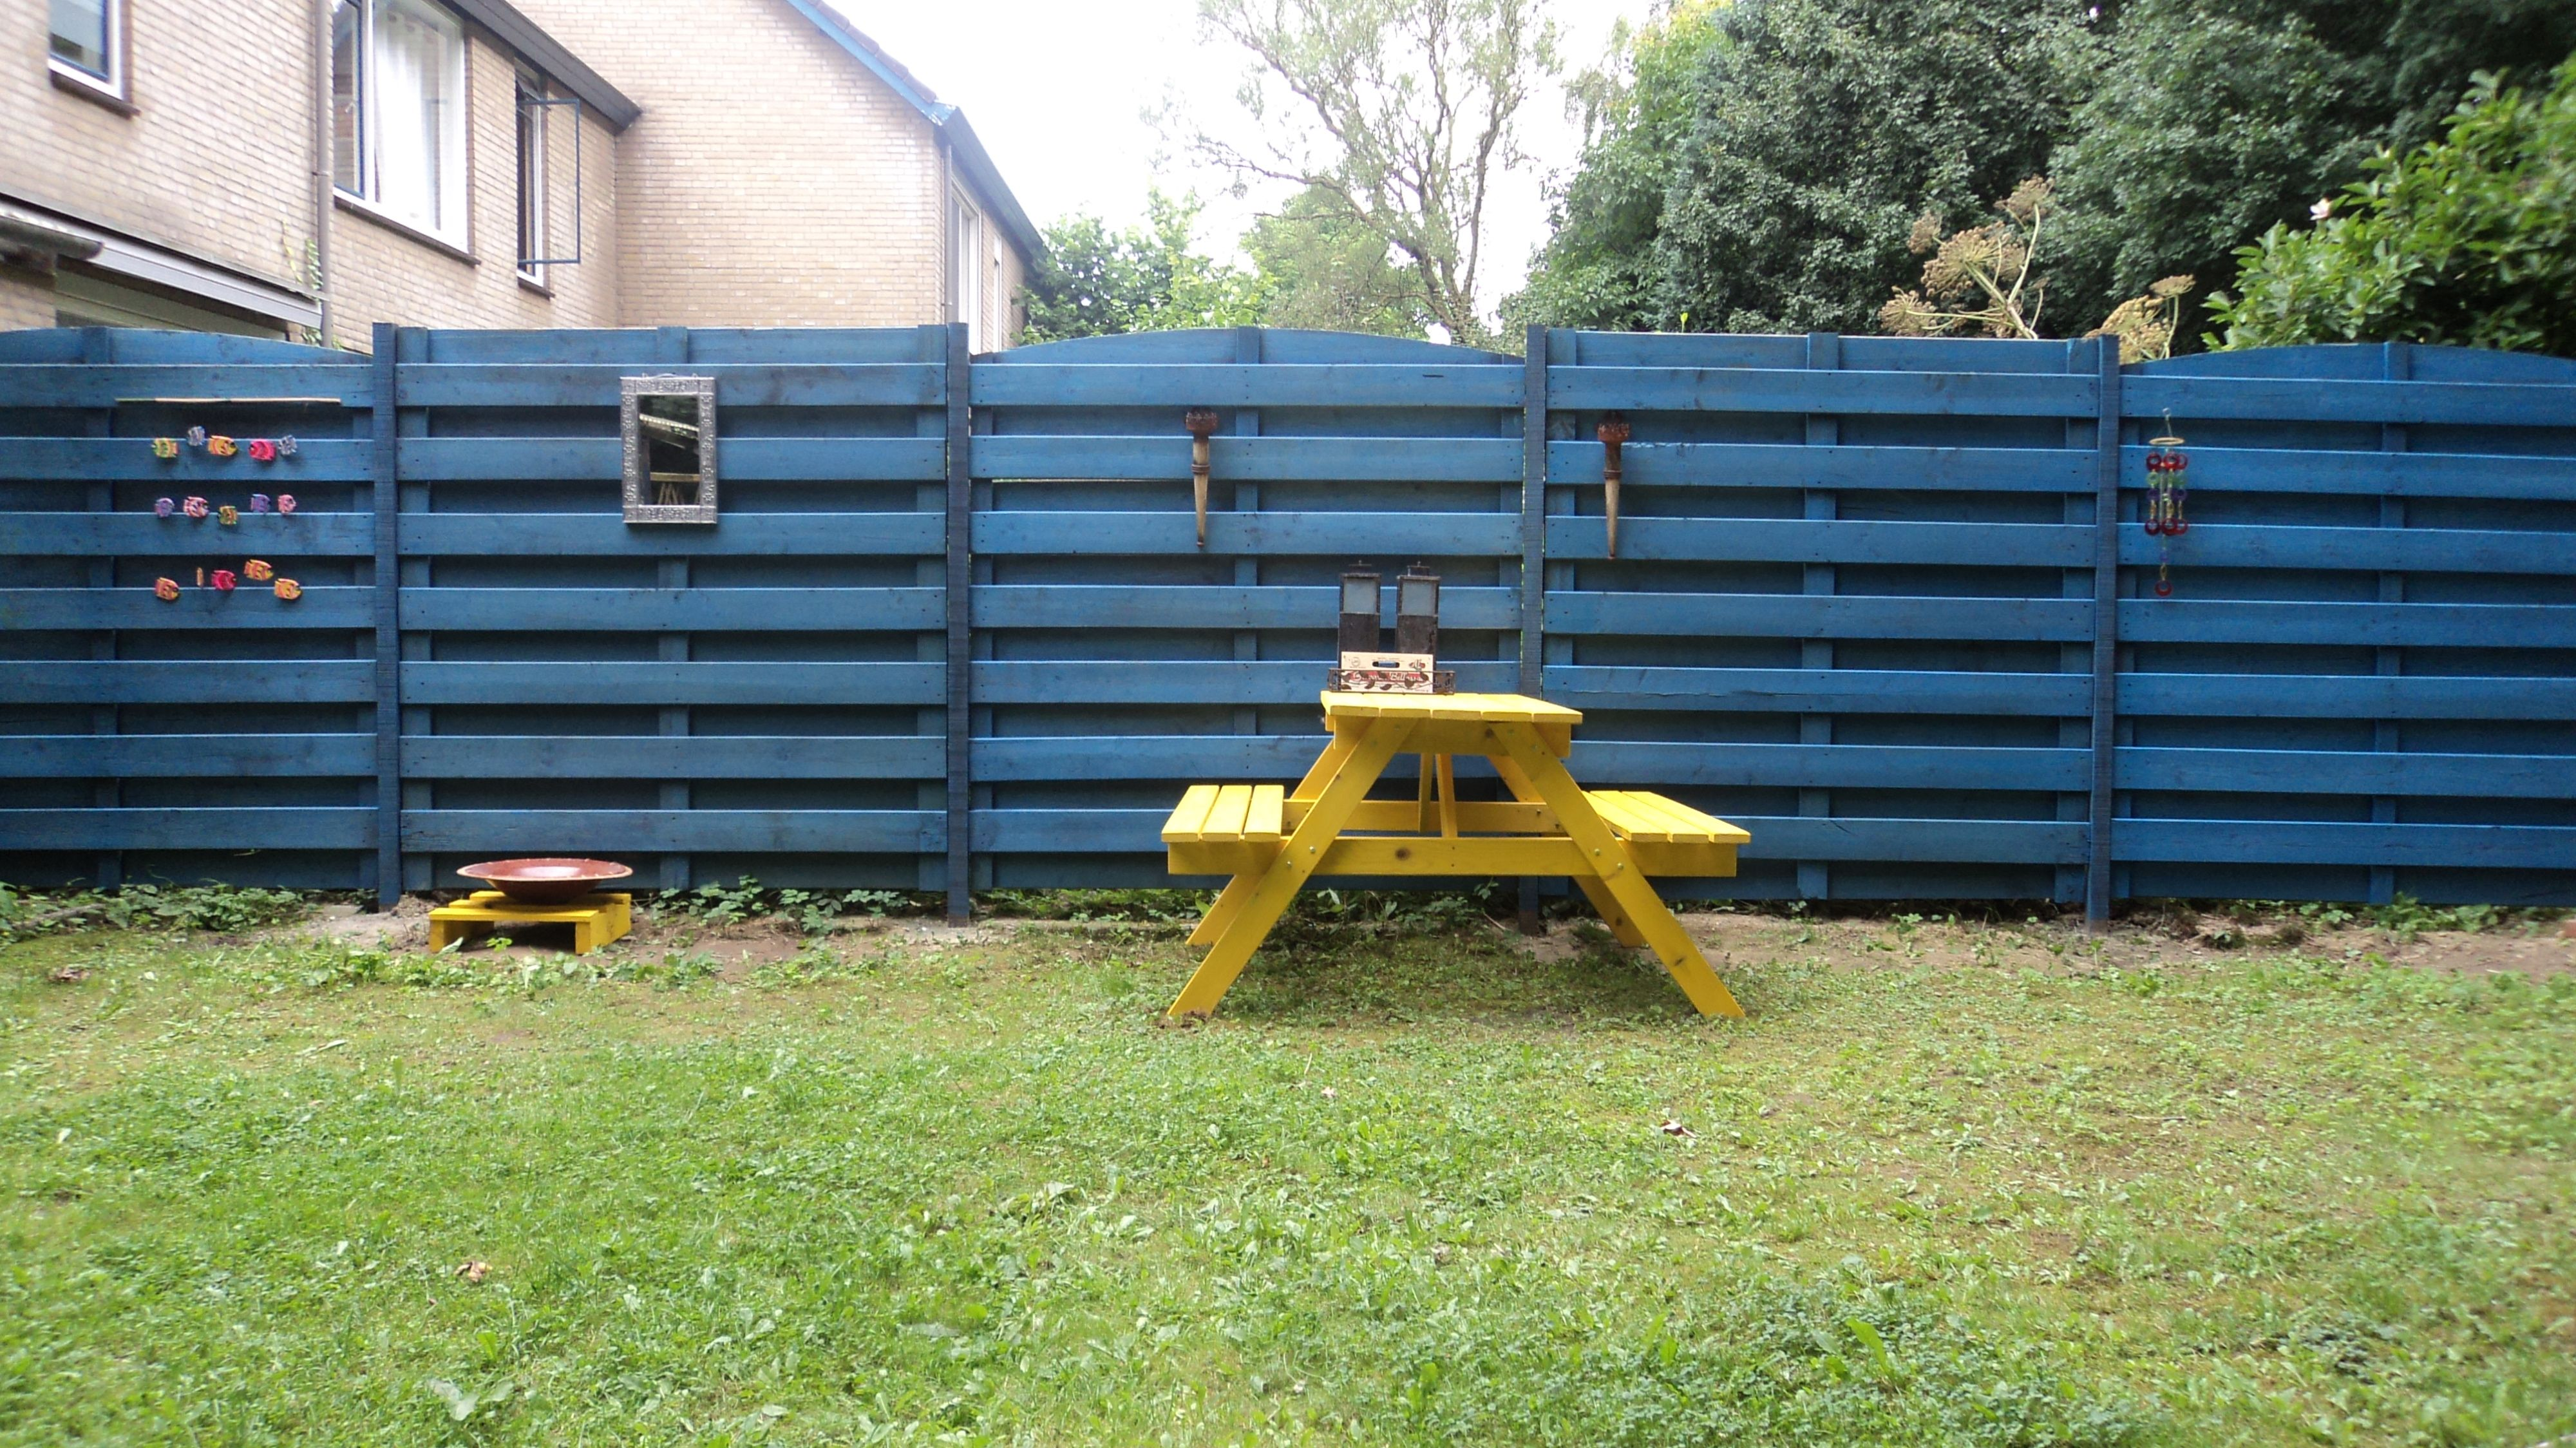 1000  images about verf je schutting / paint your fence on ...